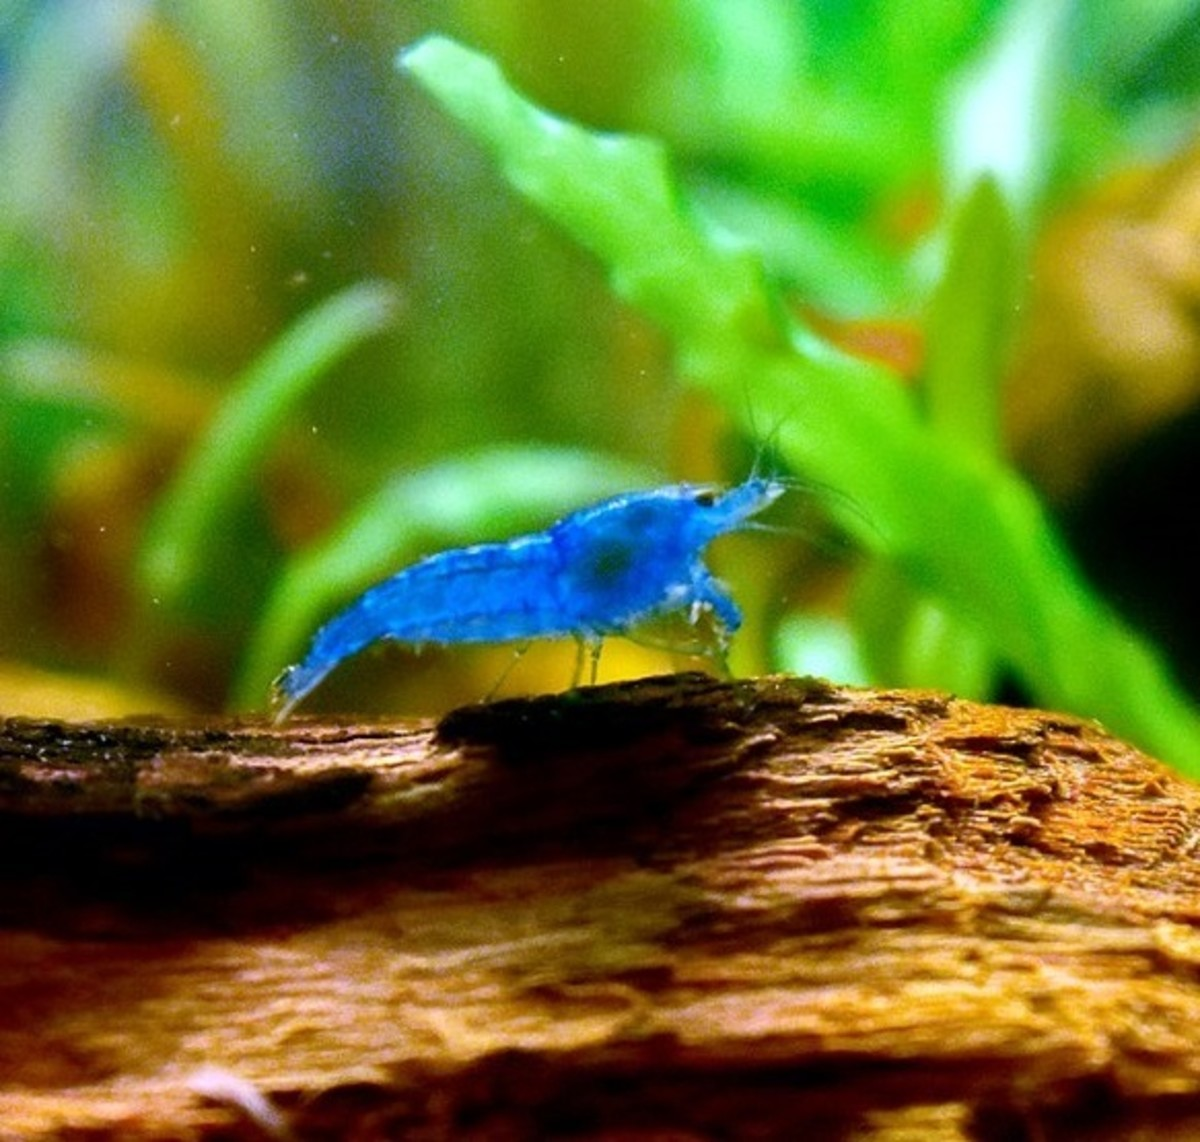 Aquarium shrimp is an excellent tank mate for a Betta. Shrimp spend their time eating algae off plants and extra food.